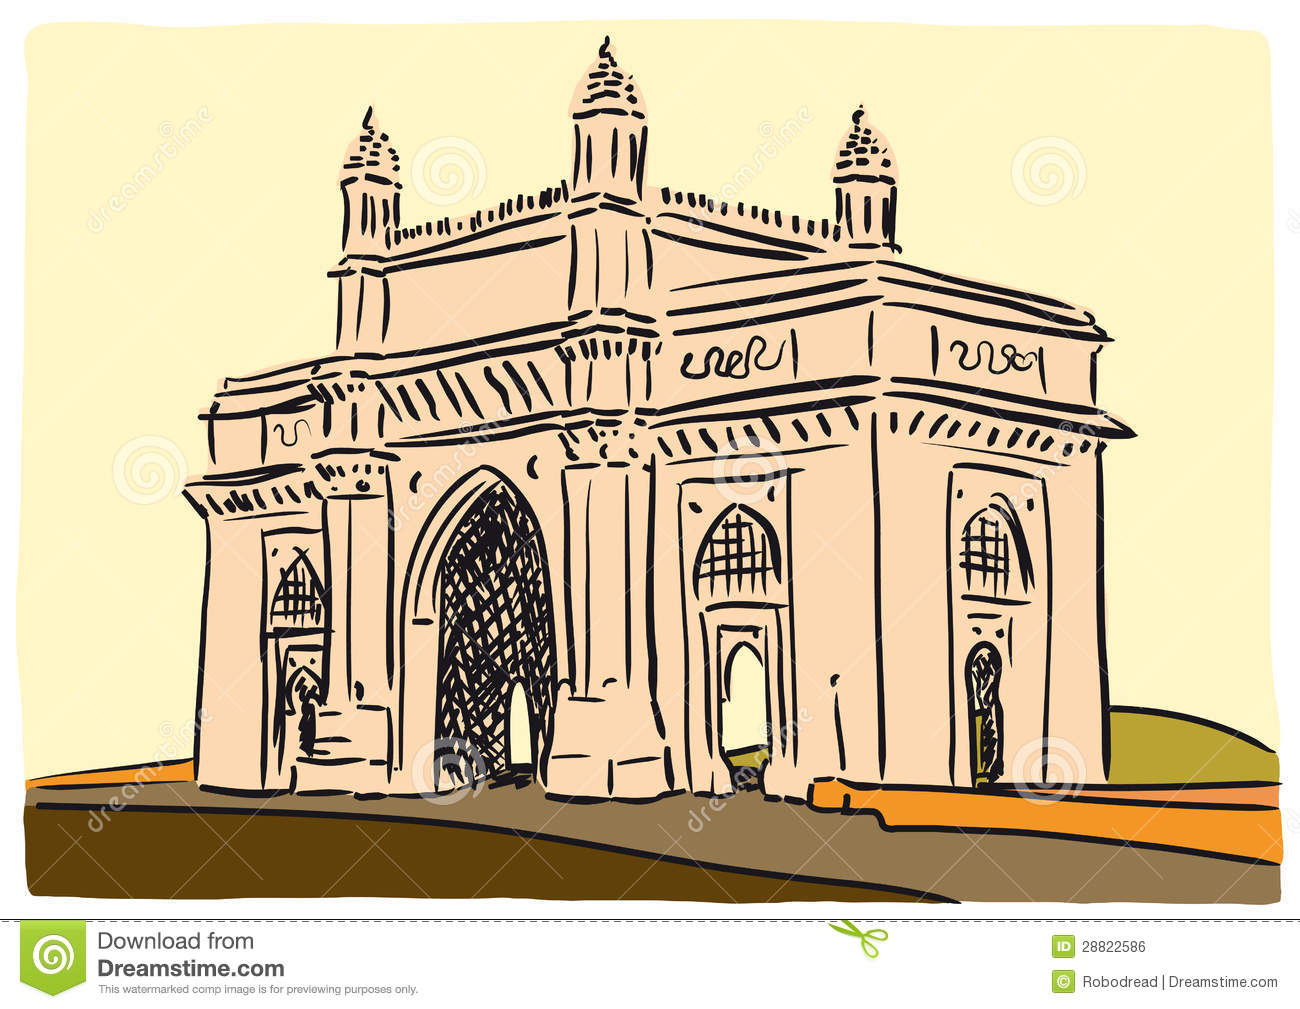 Gateway of india clipart #2